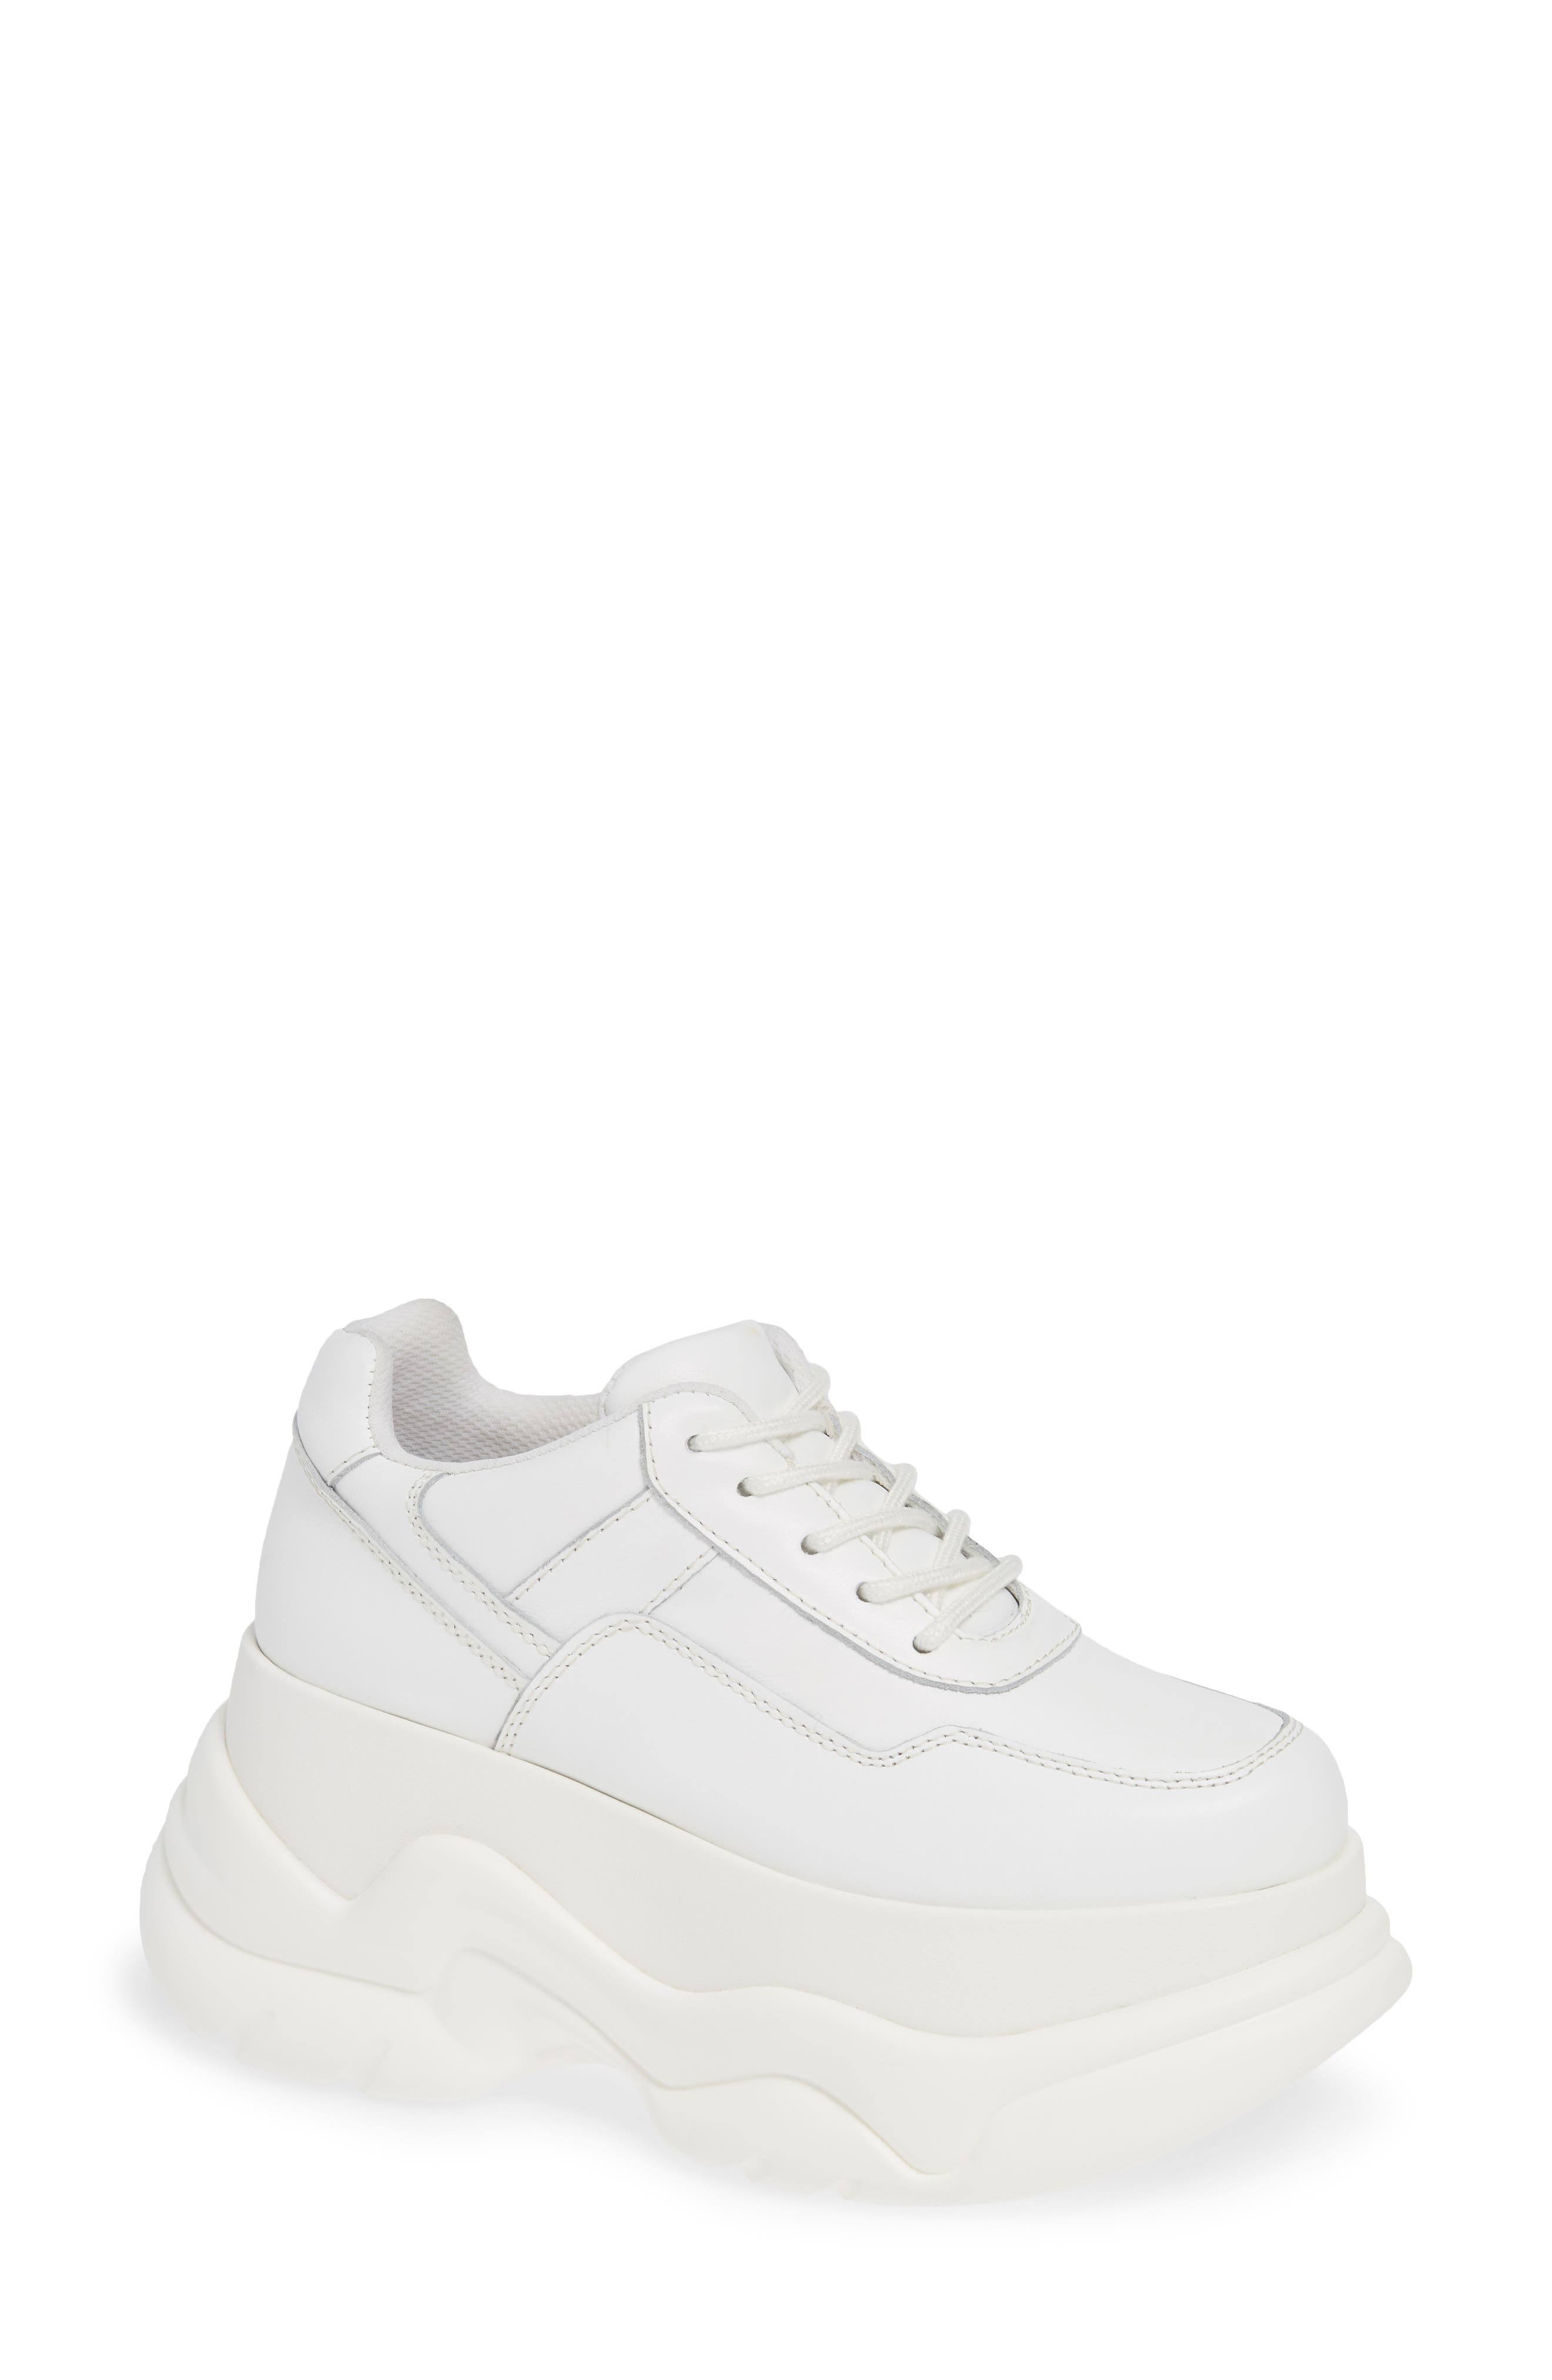 Most Def Wedge Sneaker,                             Main thumbnail 1, color,                             WHITE/ WHITE LEATHER